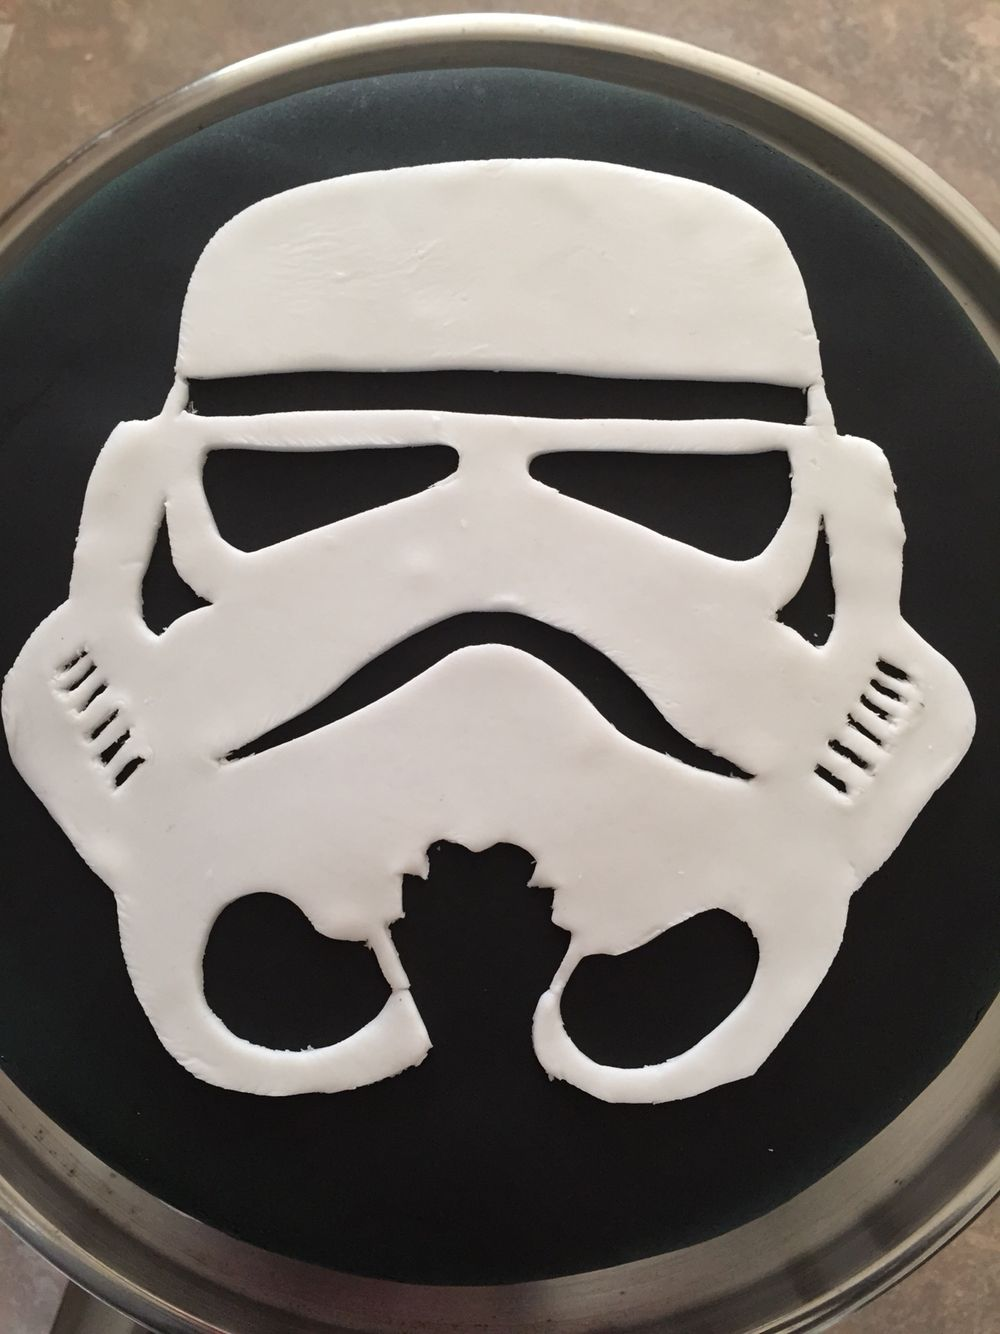 8th birthday storm trooper cake for dominic cakes i love. Black Bedroom Furniture Sets. Home Design Ideas